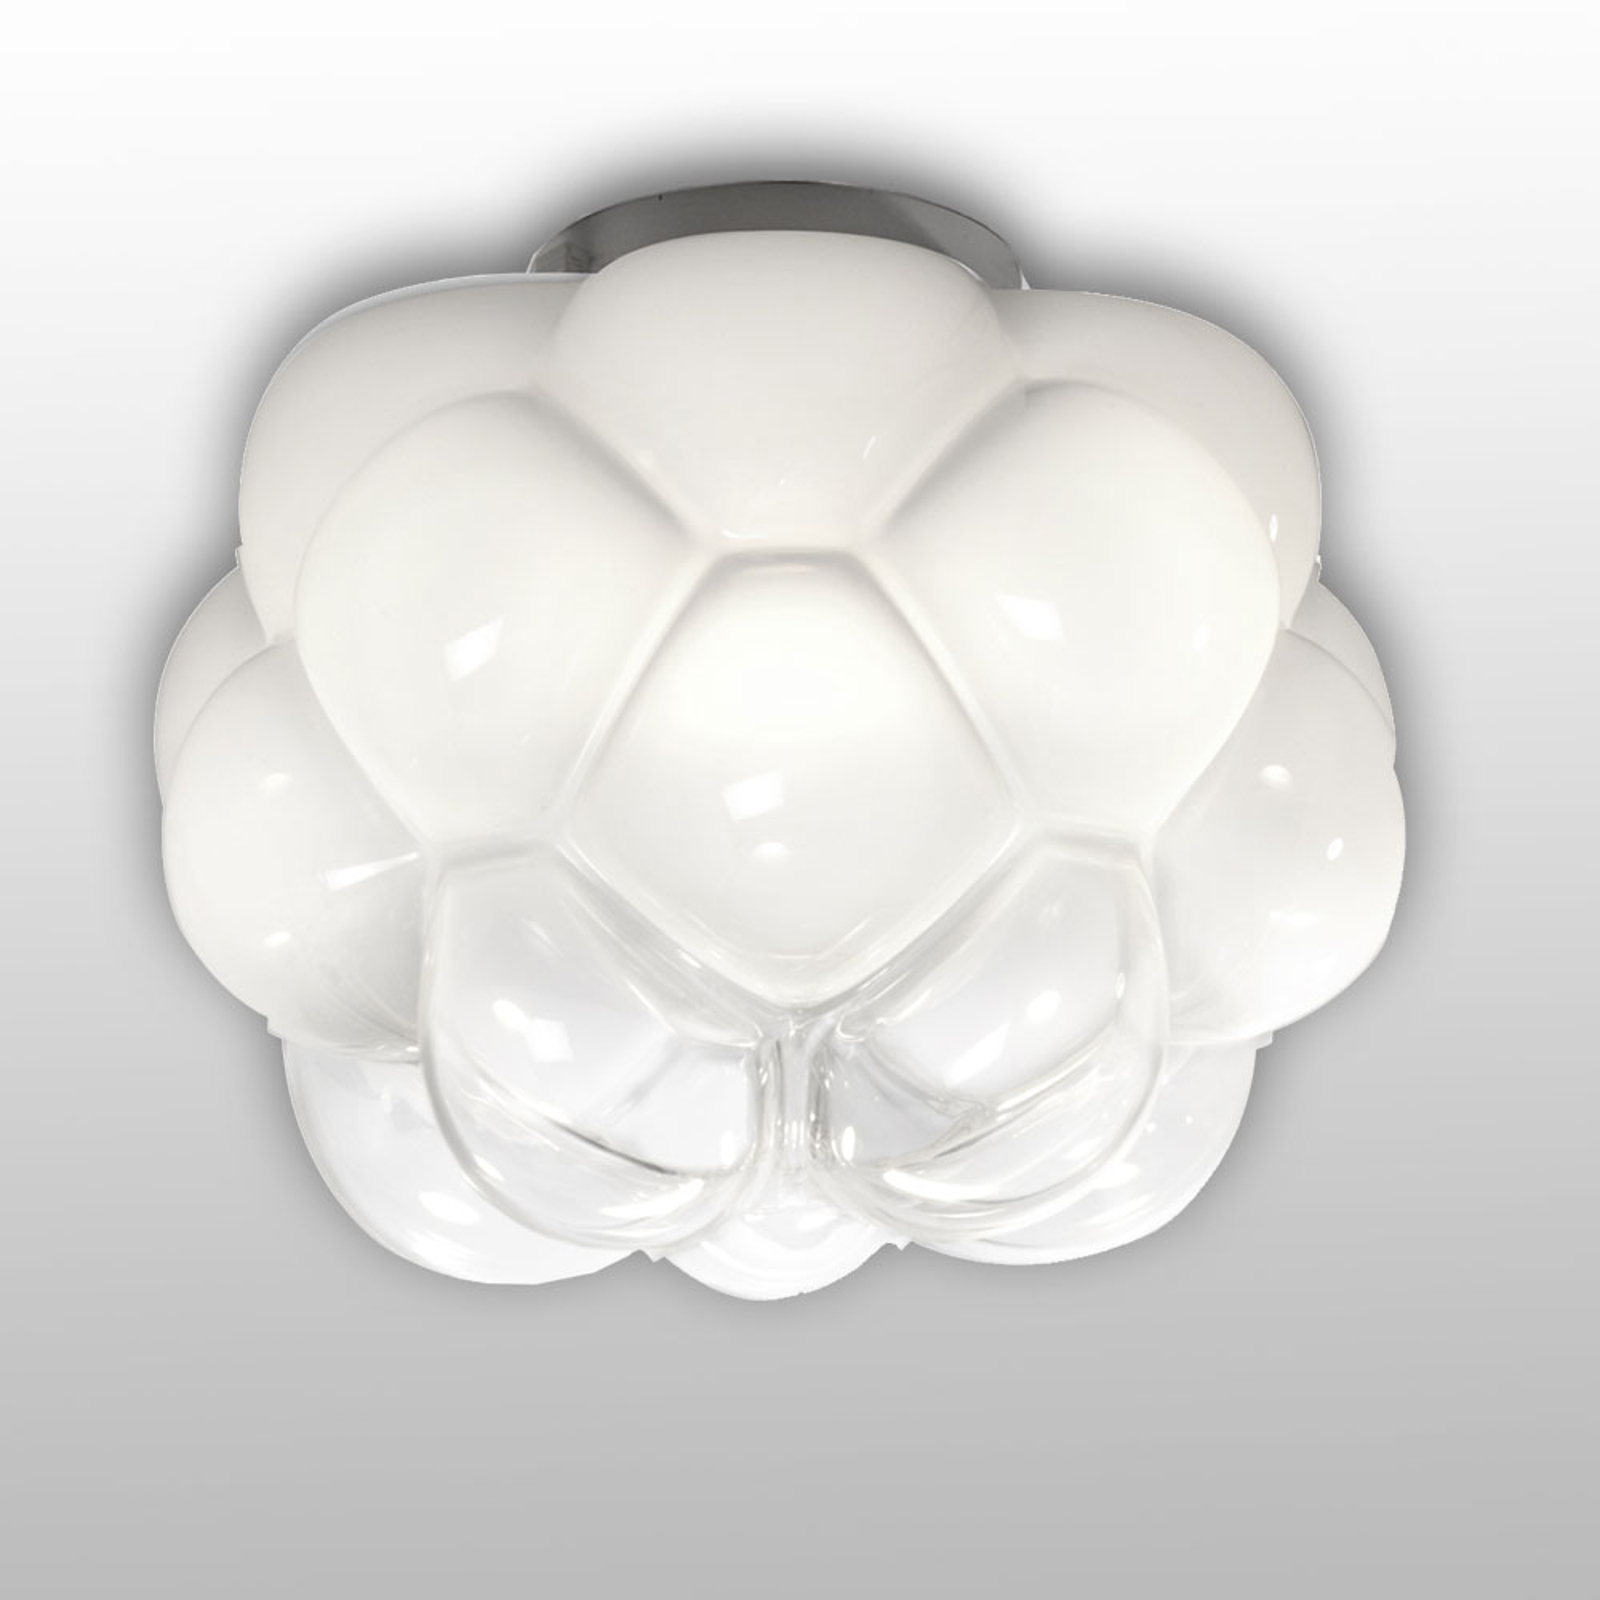 Molnformad LED-taklampa Cloudy, 26 cm